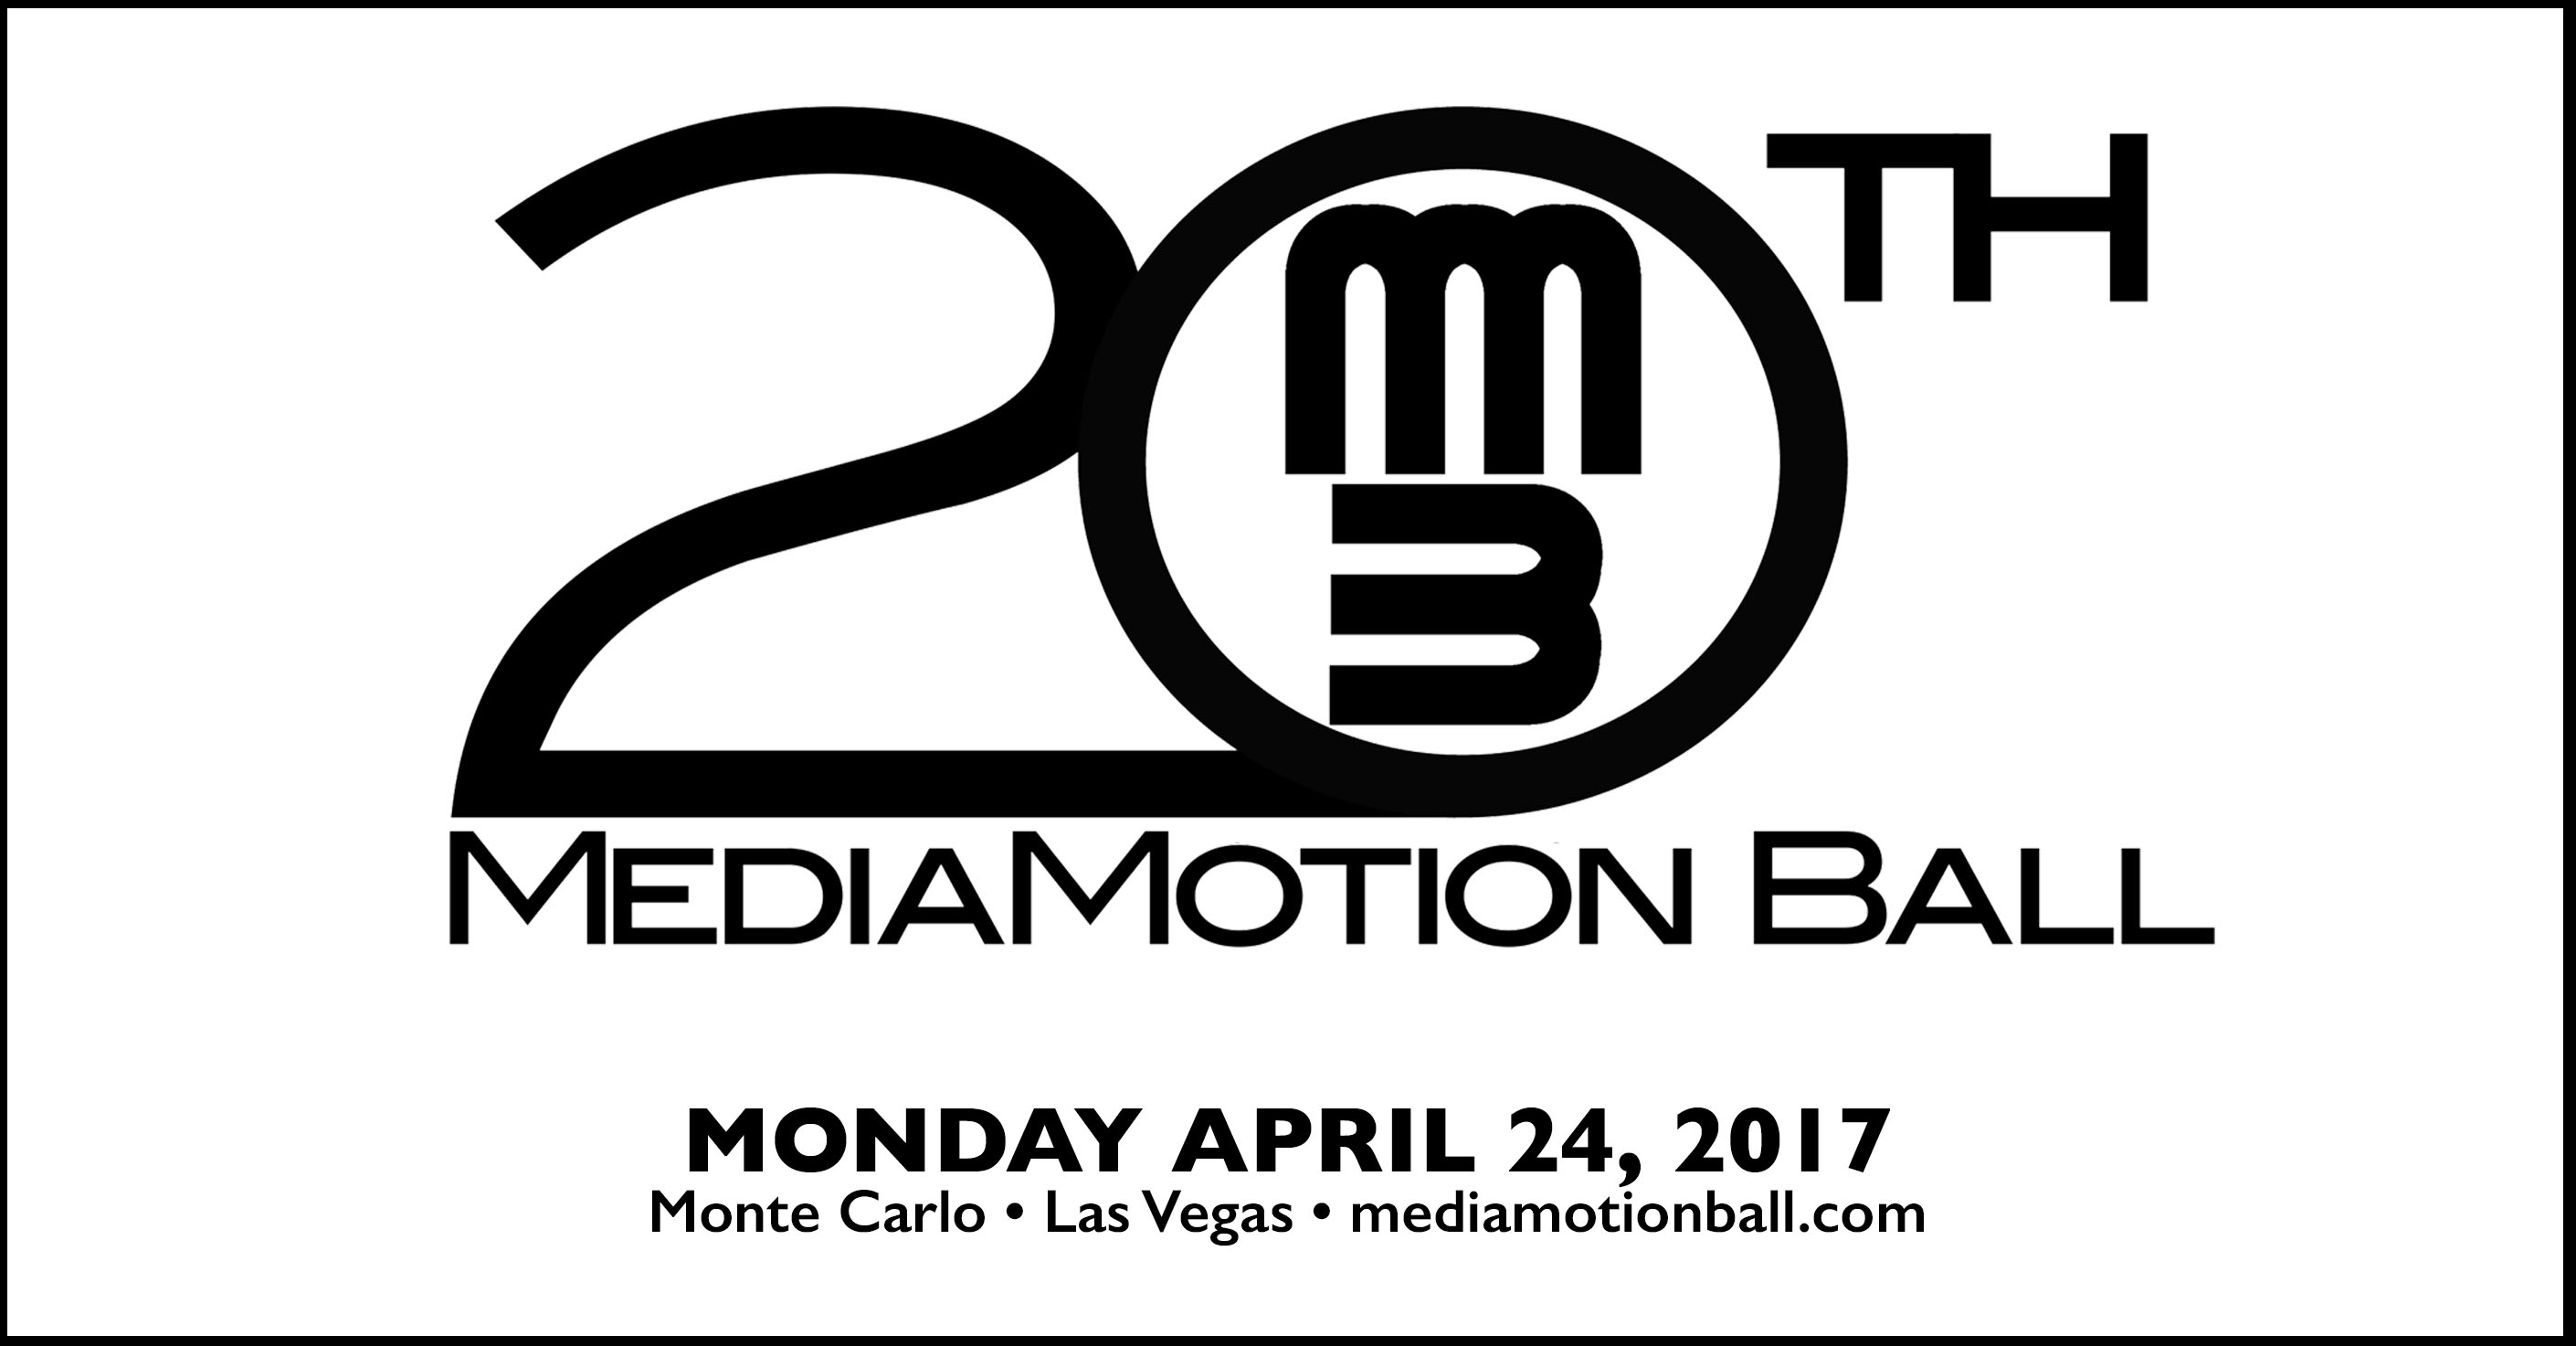 The 20th Anniversary MediaMotion Ball is a go for March 6, 2017 6